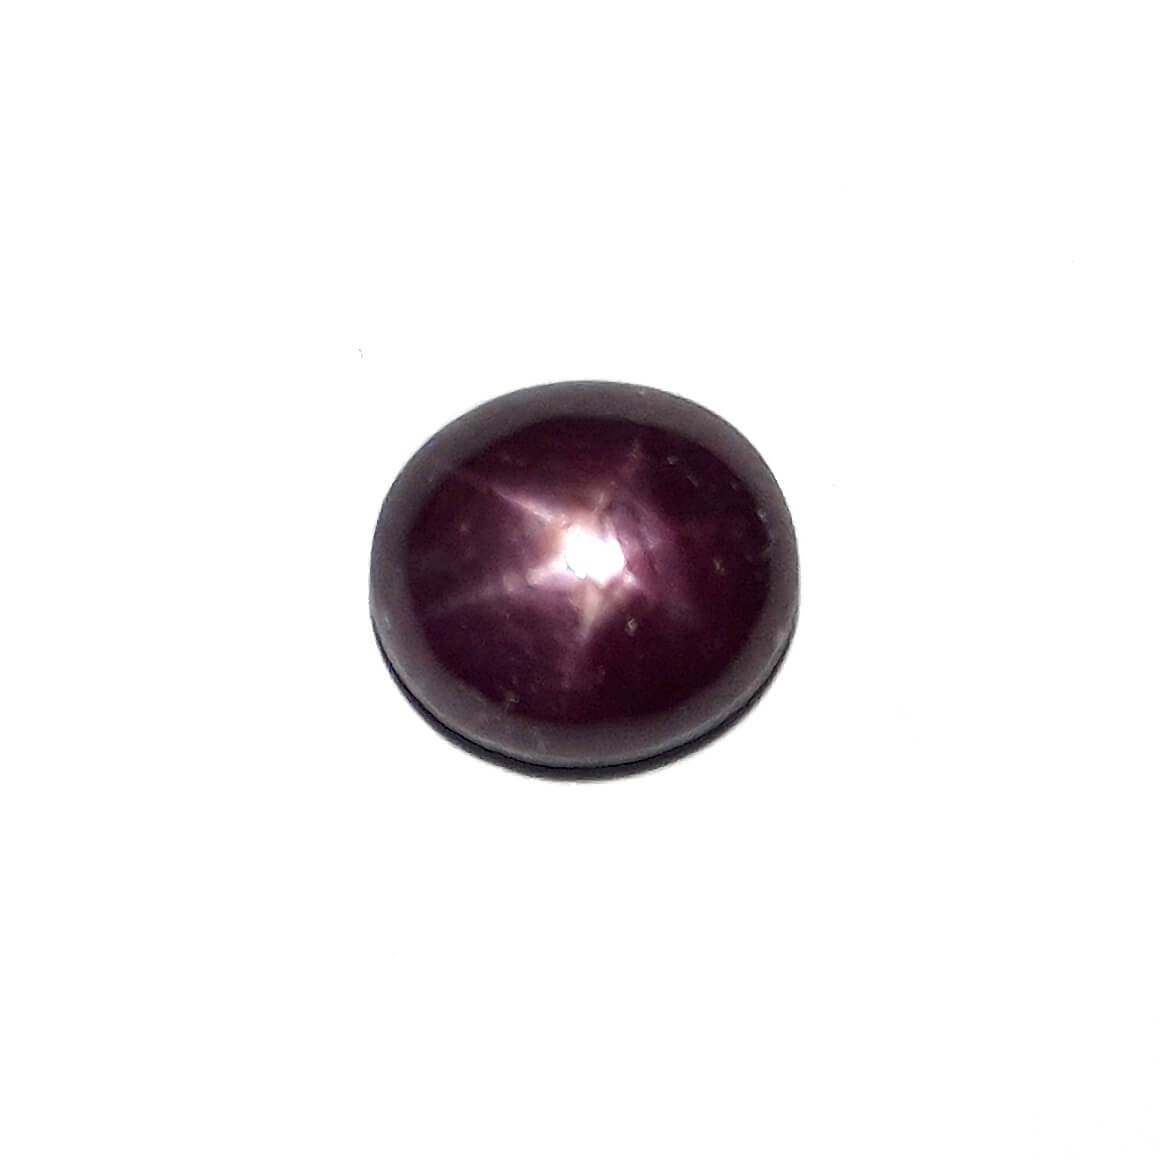 10.21 Carat/ 11.34 Ratti Natural African Star Ruby (Manik) Gemstone